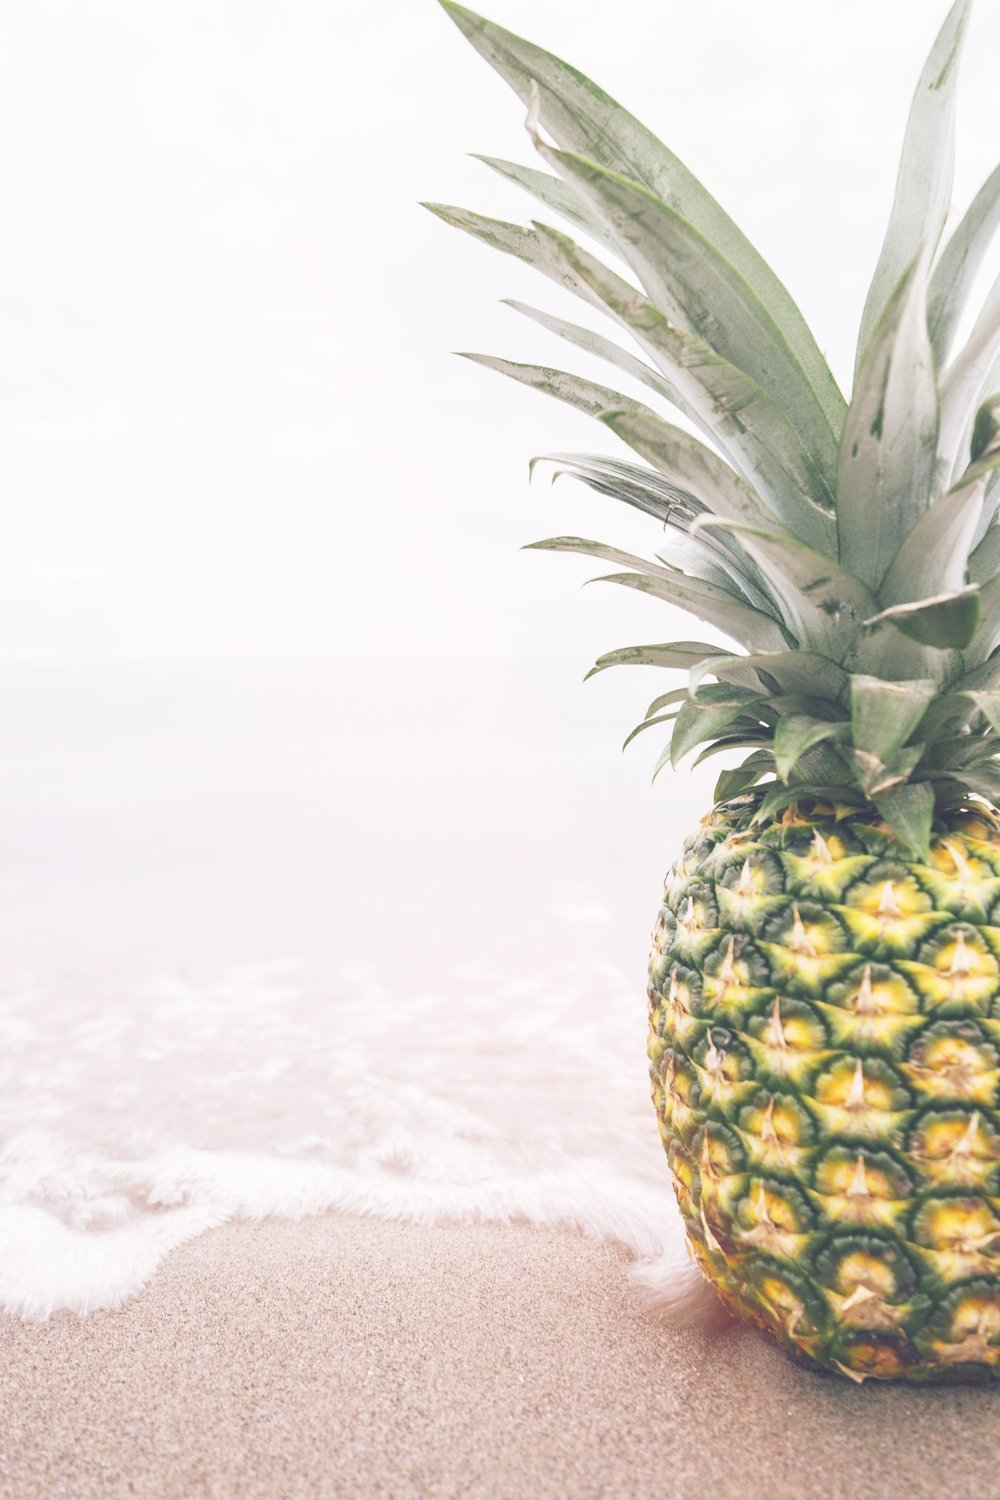 Turn Up - Make yourself a chill playlist to get you in the mood to veg out or get playful. My recent playlist can get you started with your vacay vibes, but to make this feel even more like a treat, pick a theme and put together a playlist to match. A few ukulele tunes may be all you need to transport you to the beaches of Maui.